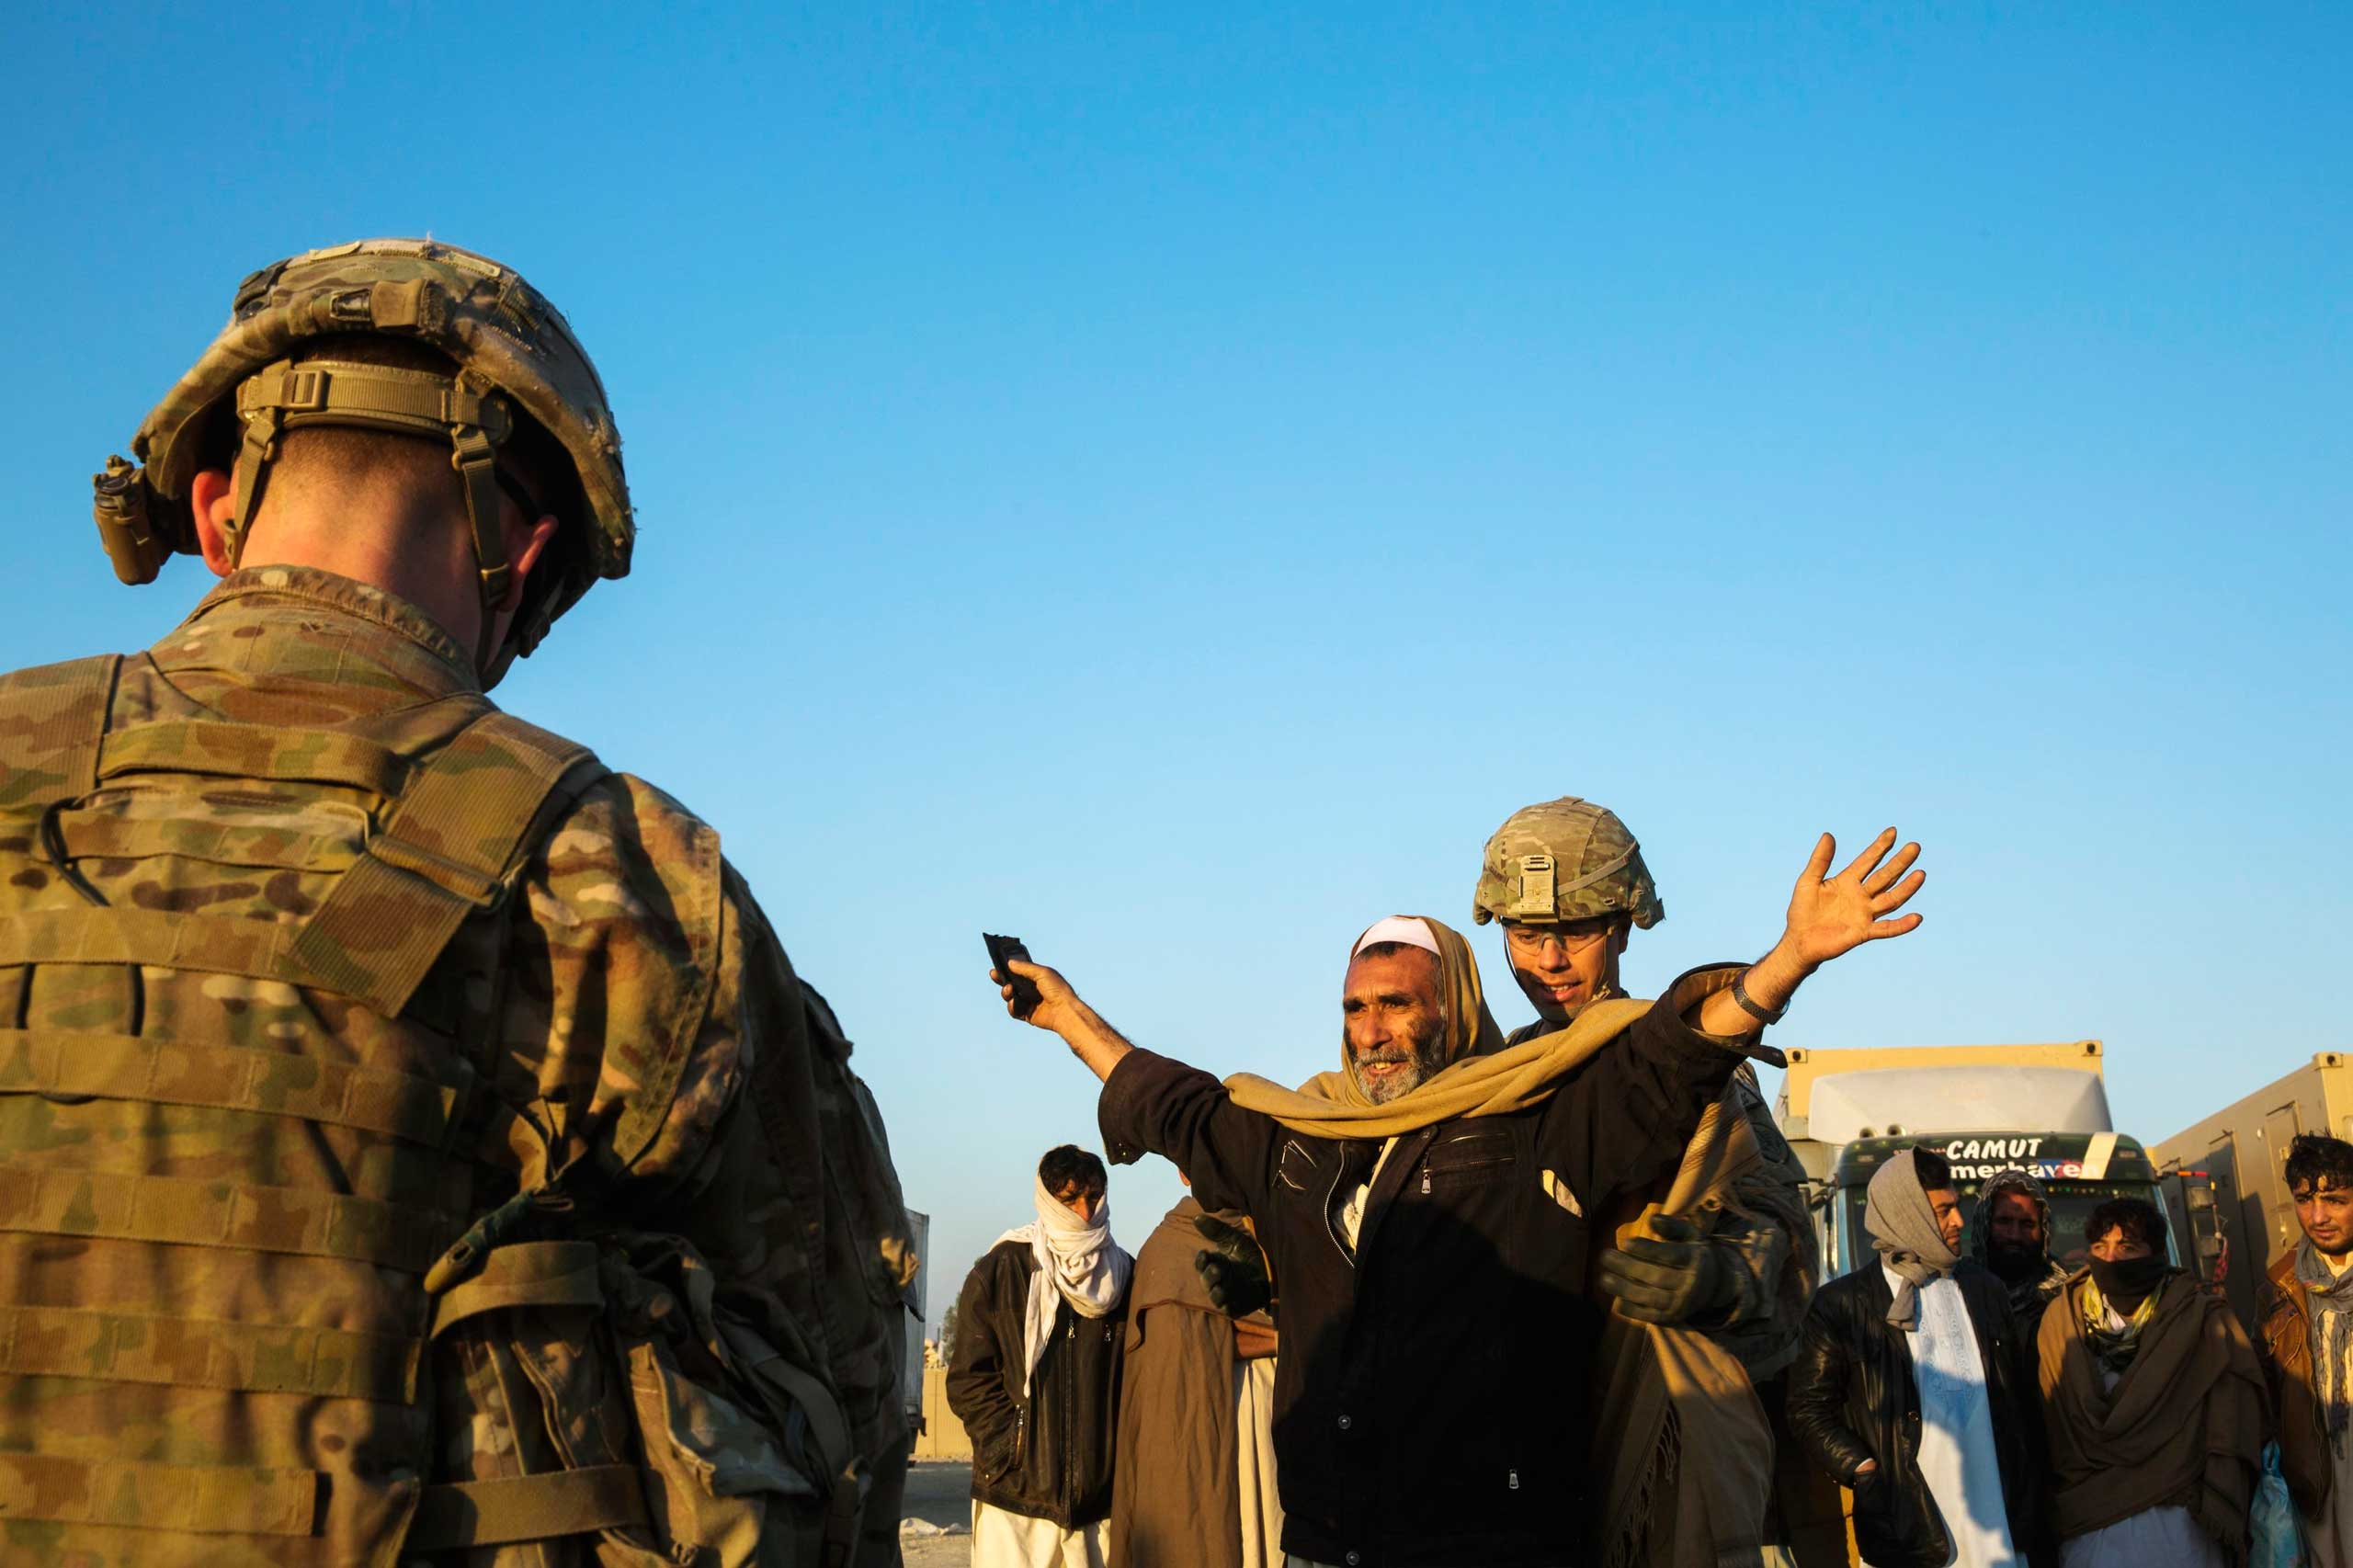 U.S. soldiers from the 3rd Cavalry Regiment interact with men selected to be biometrically screened near forward operating base Gamberi in the Laghman province of Afghanistan on Dec. 14, 2014.